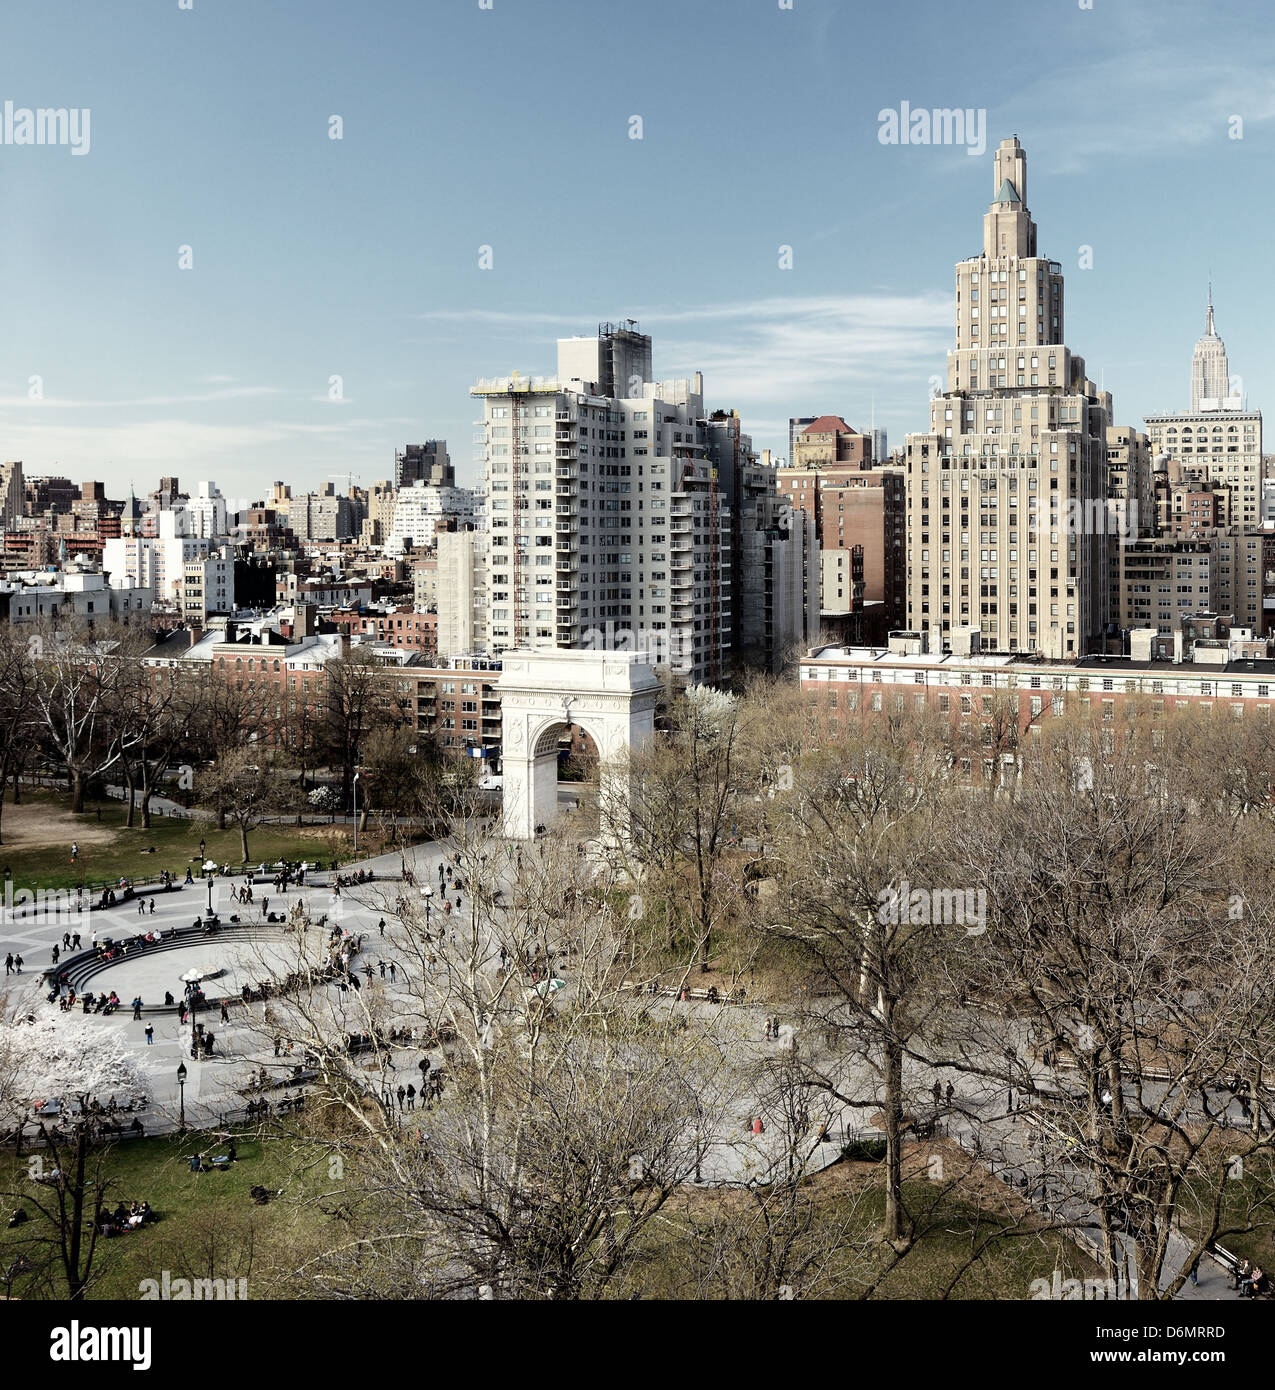 Washington Square Park in New York City - Stock Image